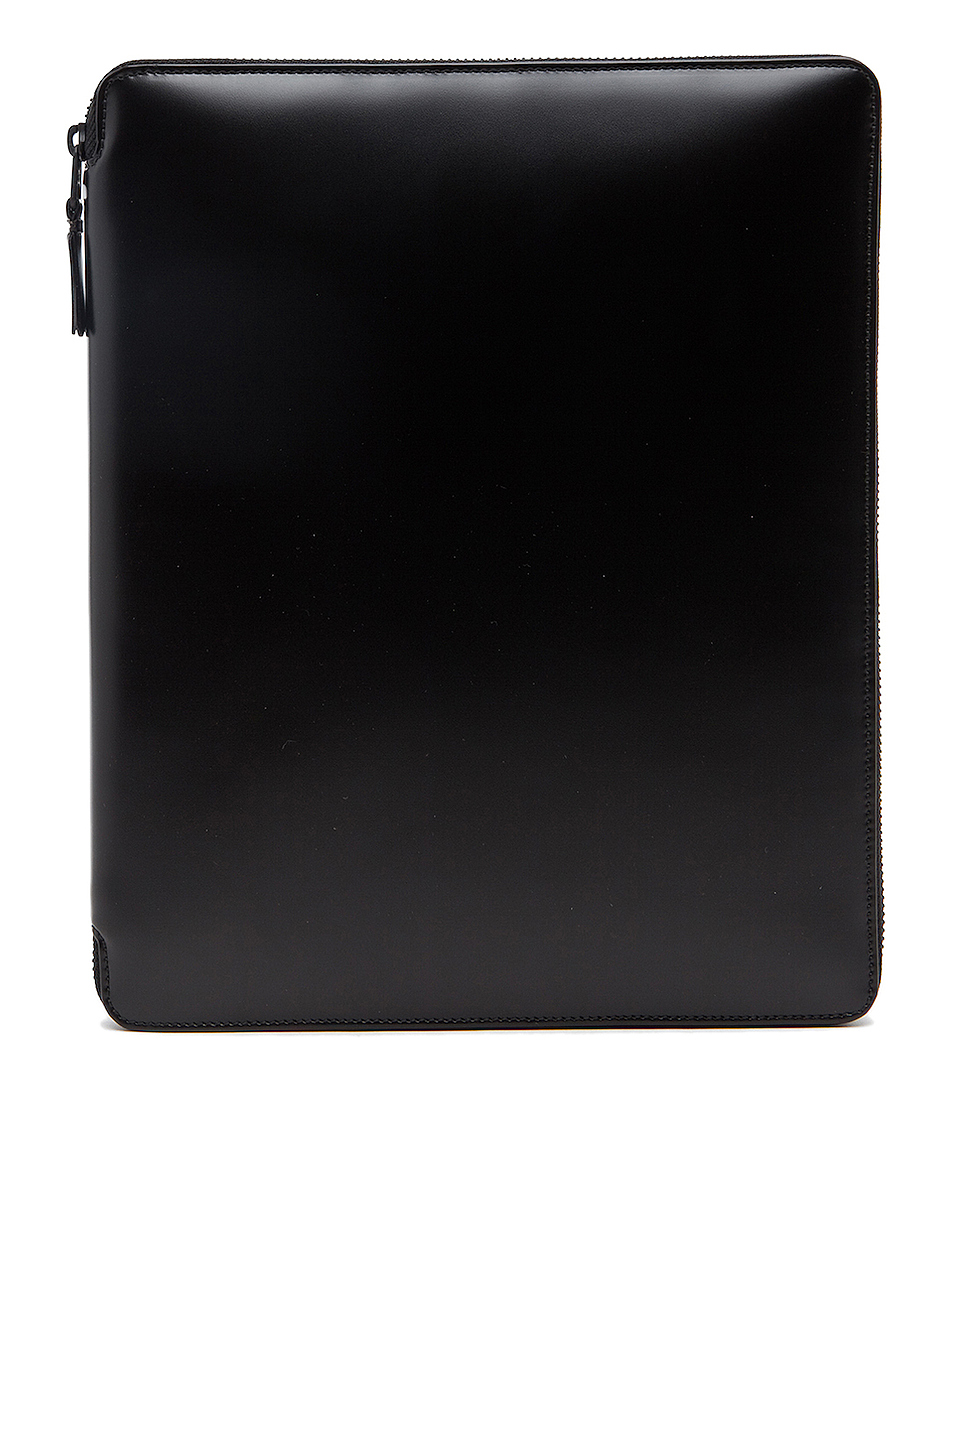 Comme Des Garcons Luxury Leather iPad Case in Black